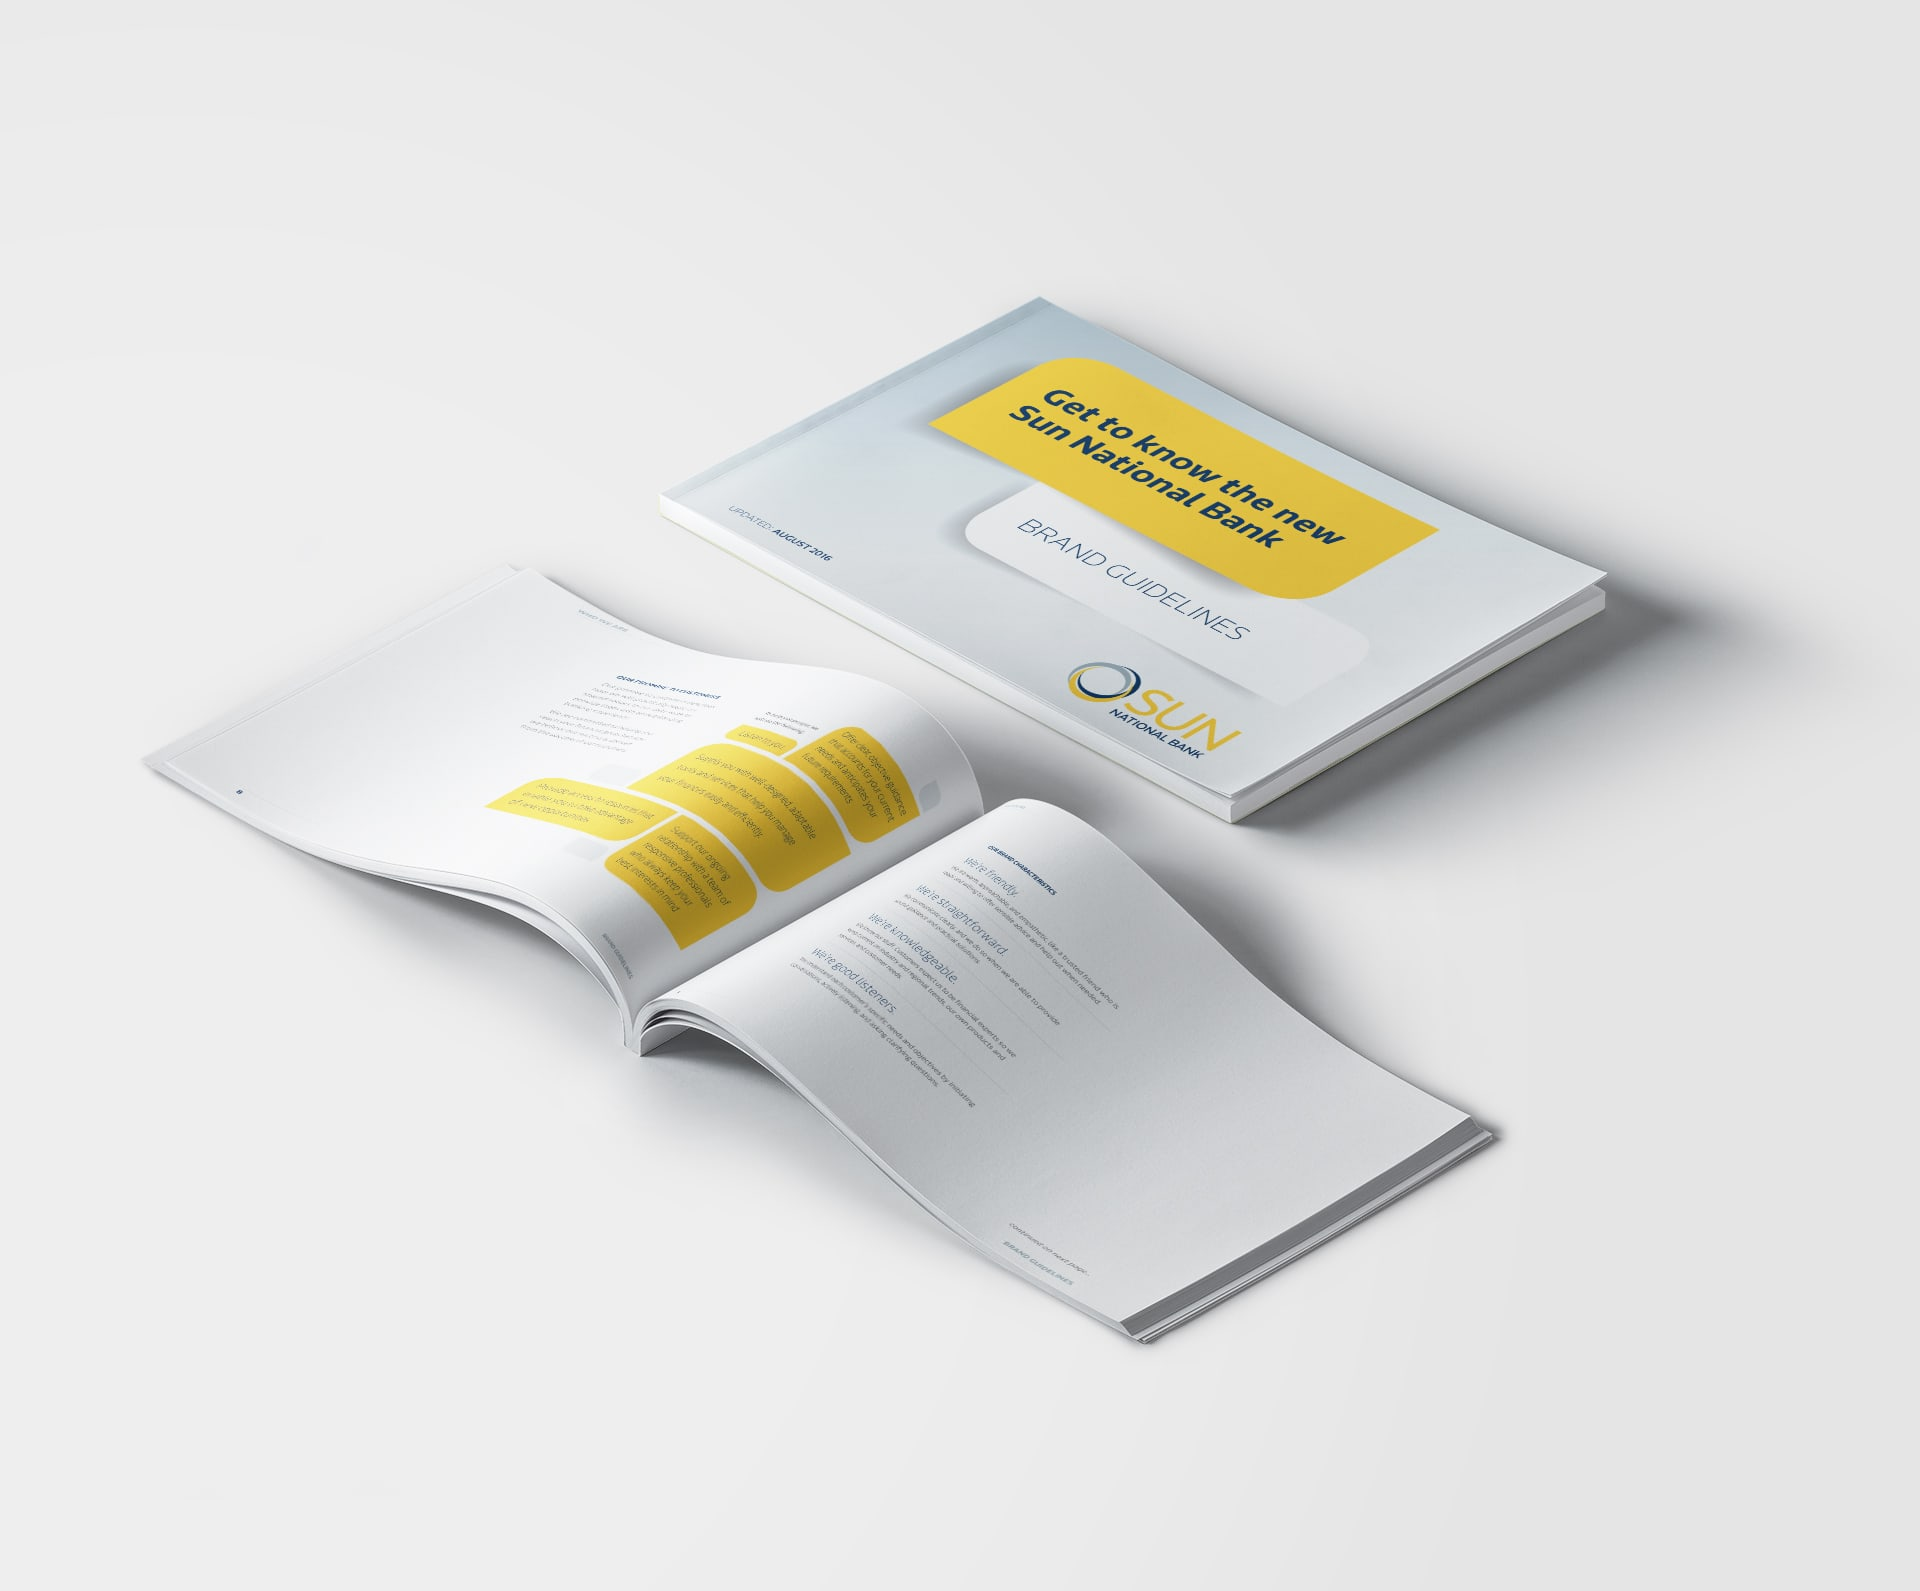 Sun National Bank brand guidelines